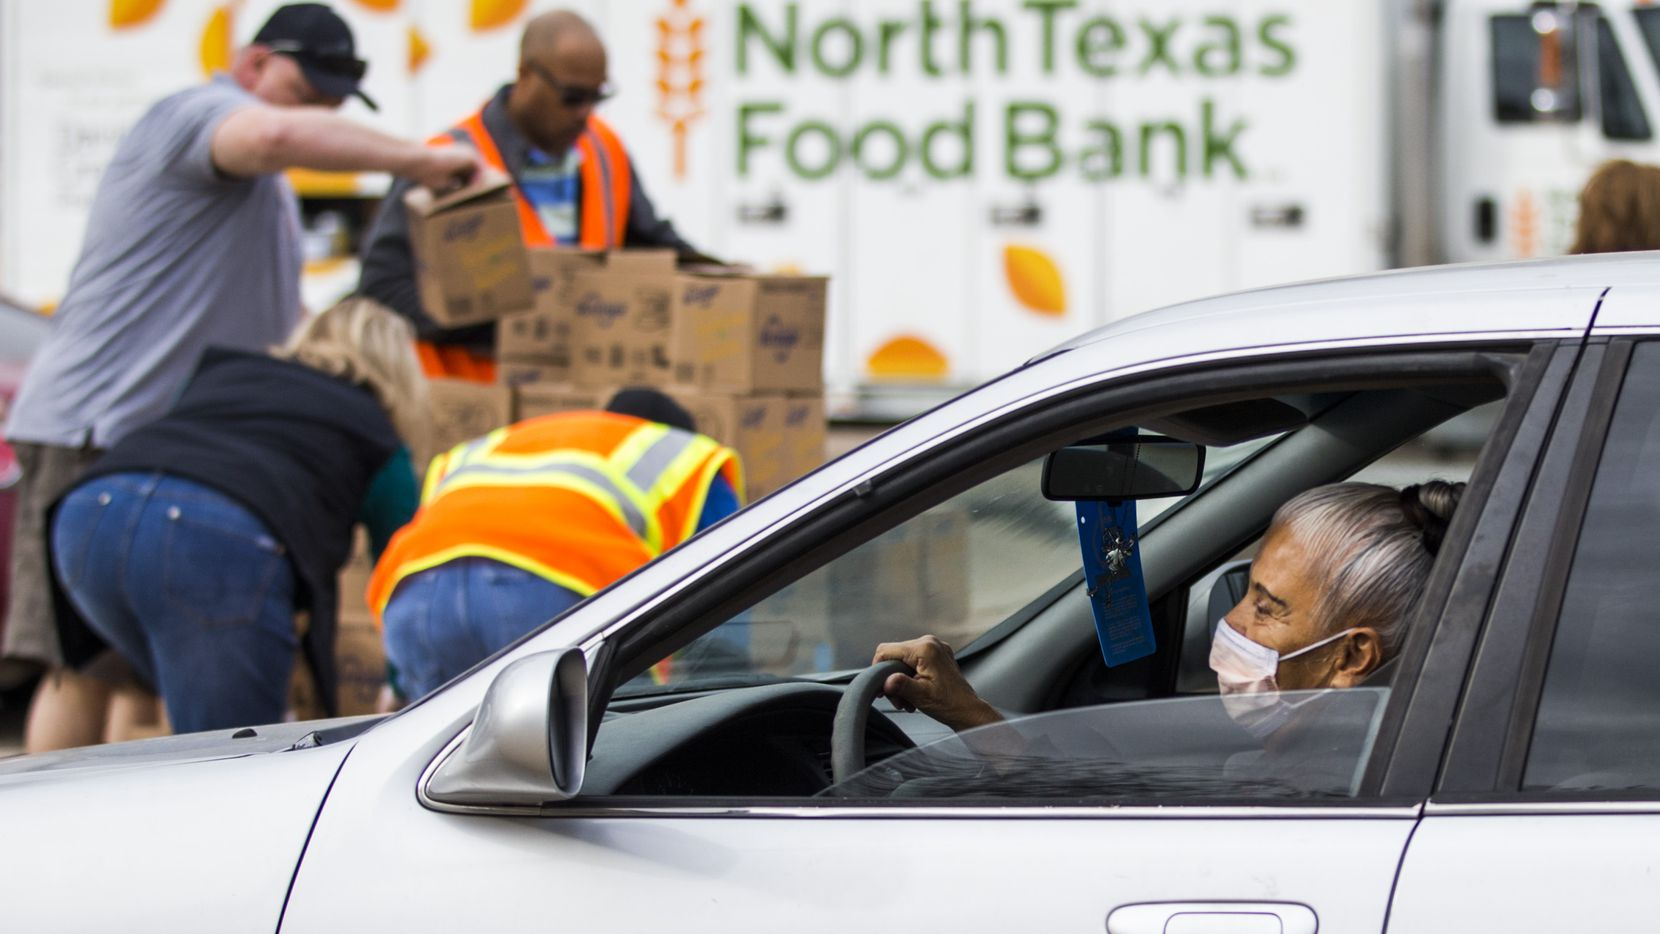 A woman wearing a surgical mask drives past volunteers who prepare to hand out boxes of food to families in vehicles. The North Texas Food Bank is currently leading a peanut butter drive that aims to raise 300,000 pounds of peanut butter to benefit local food banks.